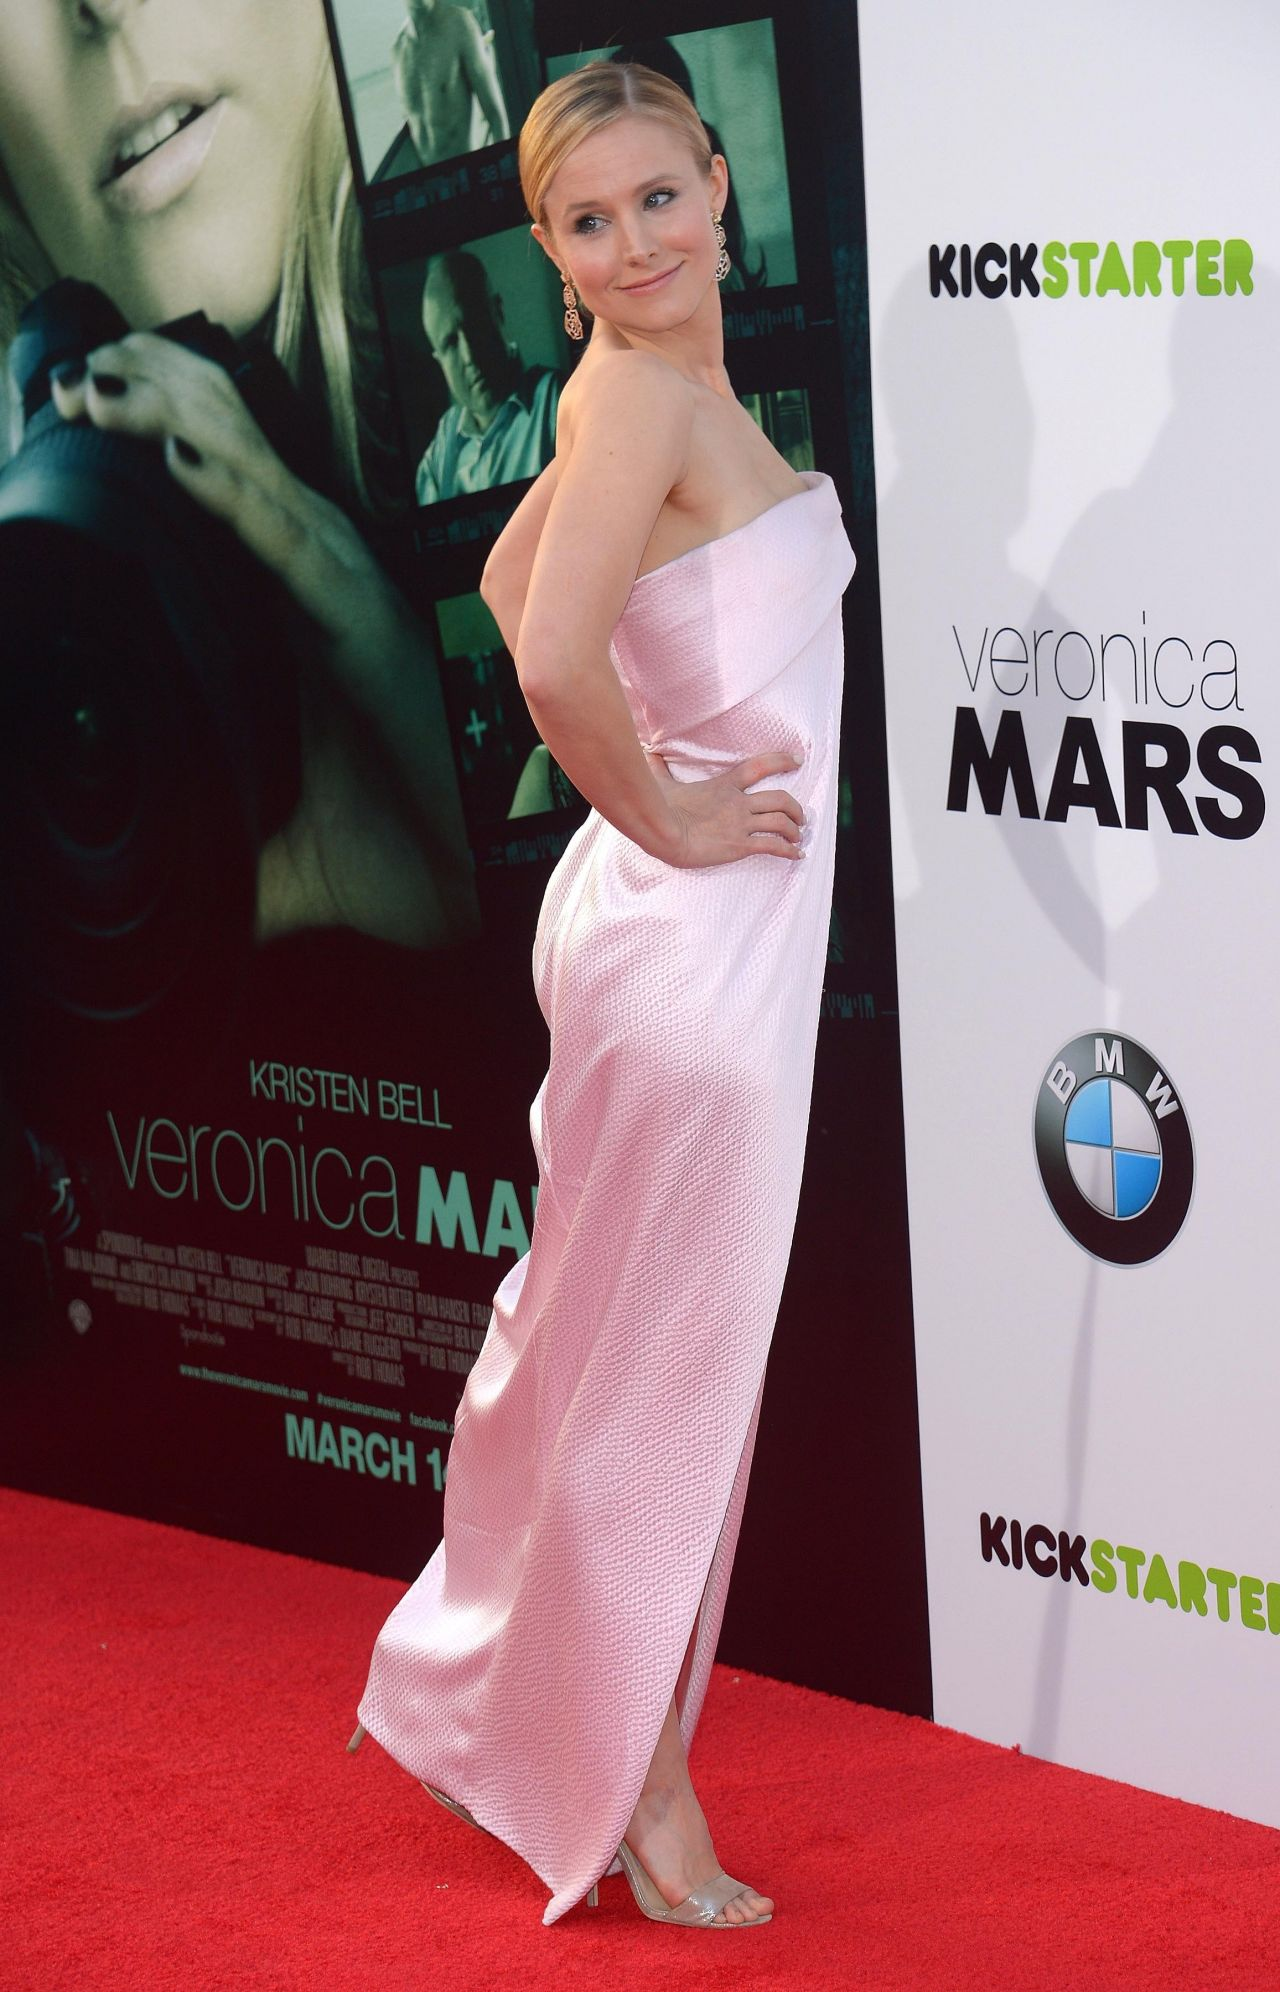 Kristen Bell Veronica Mars Premiere In Hollywood